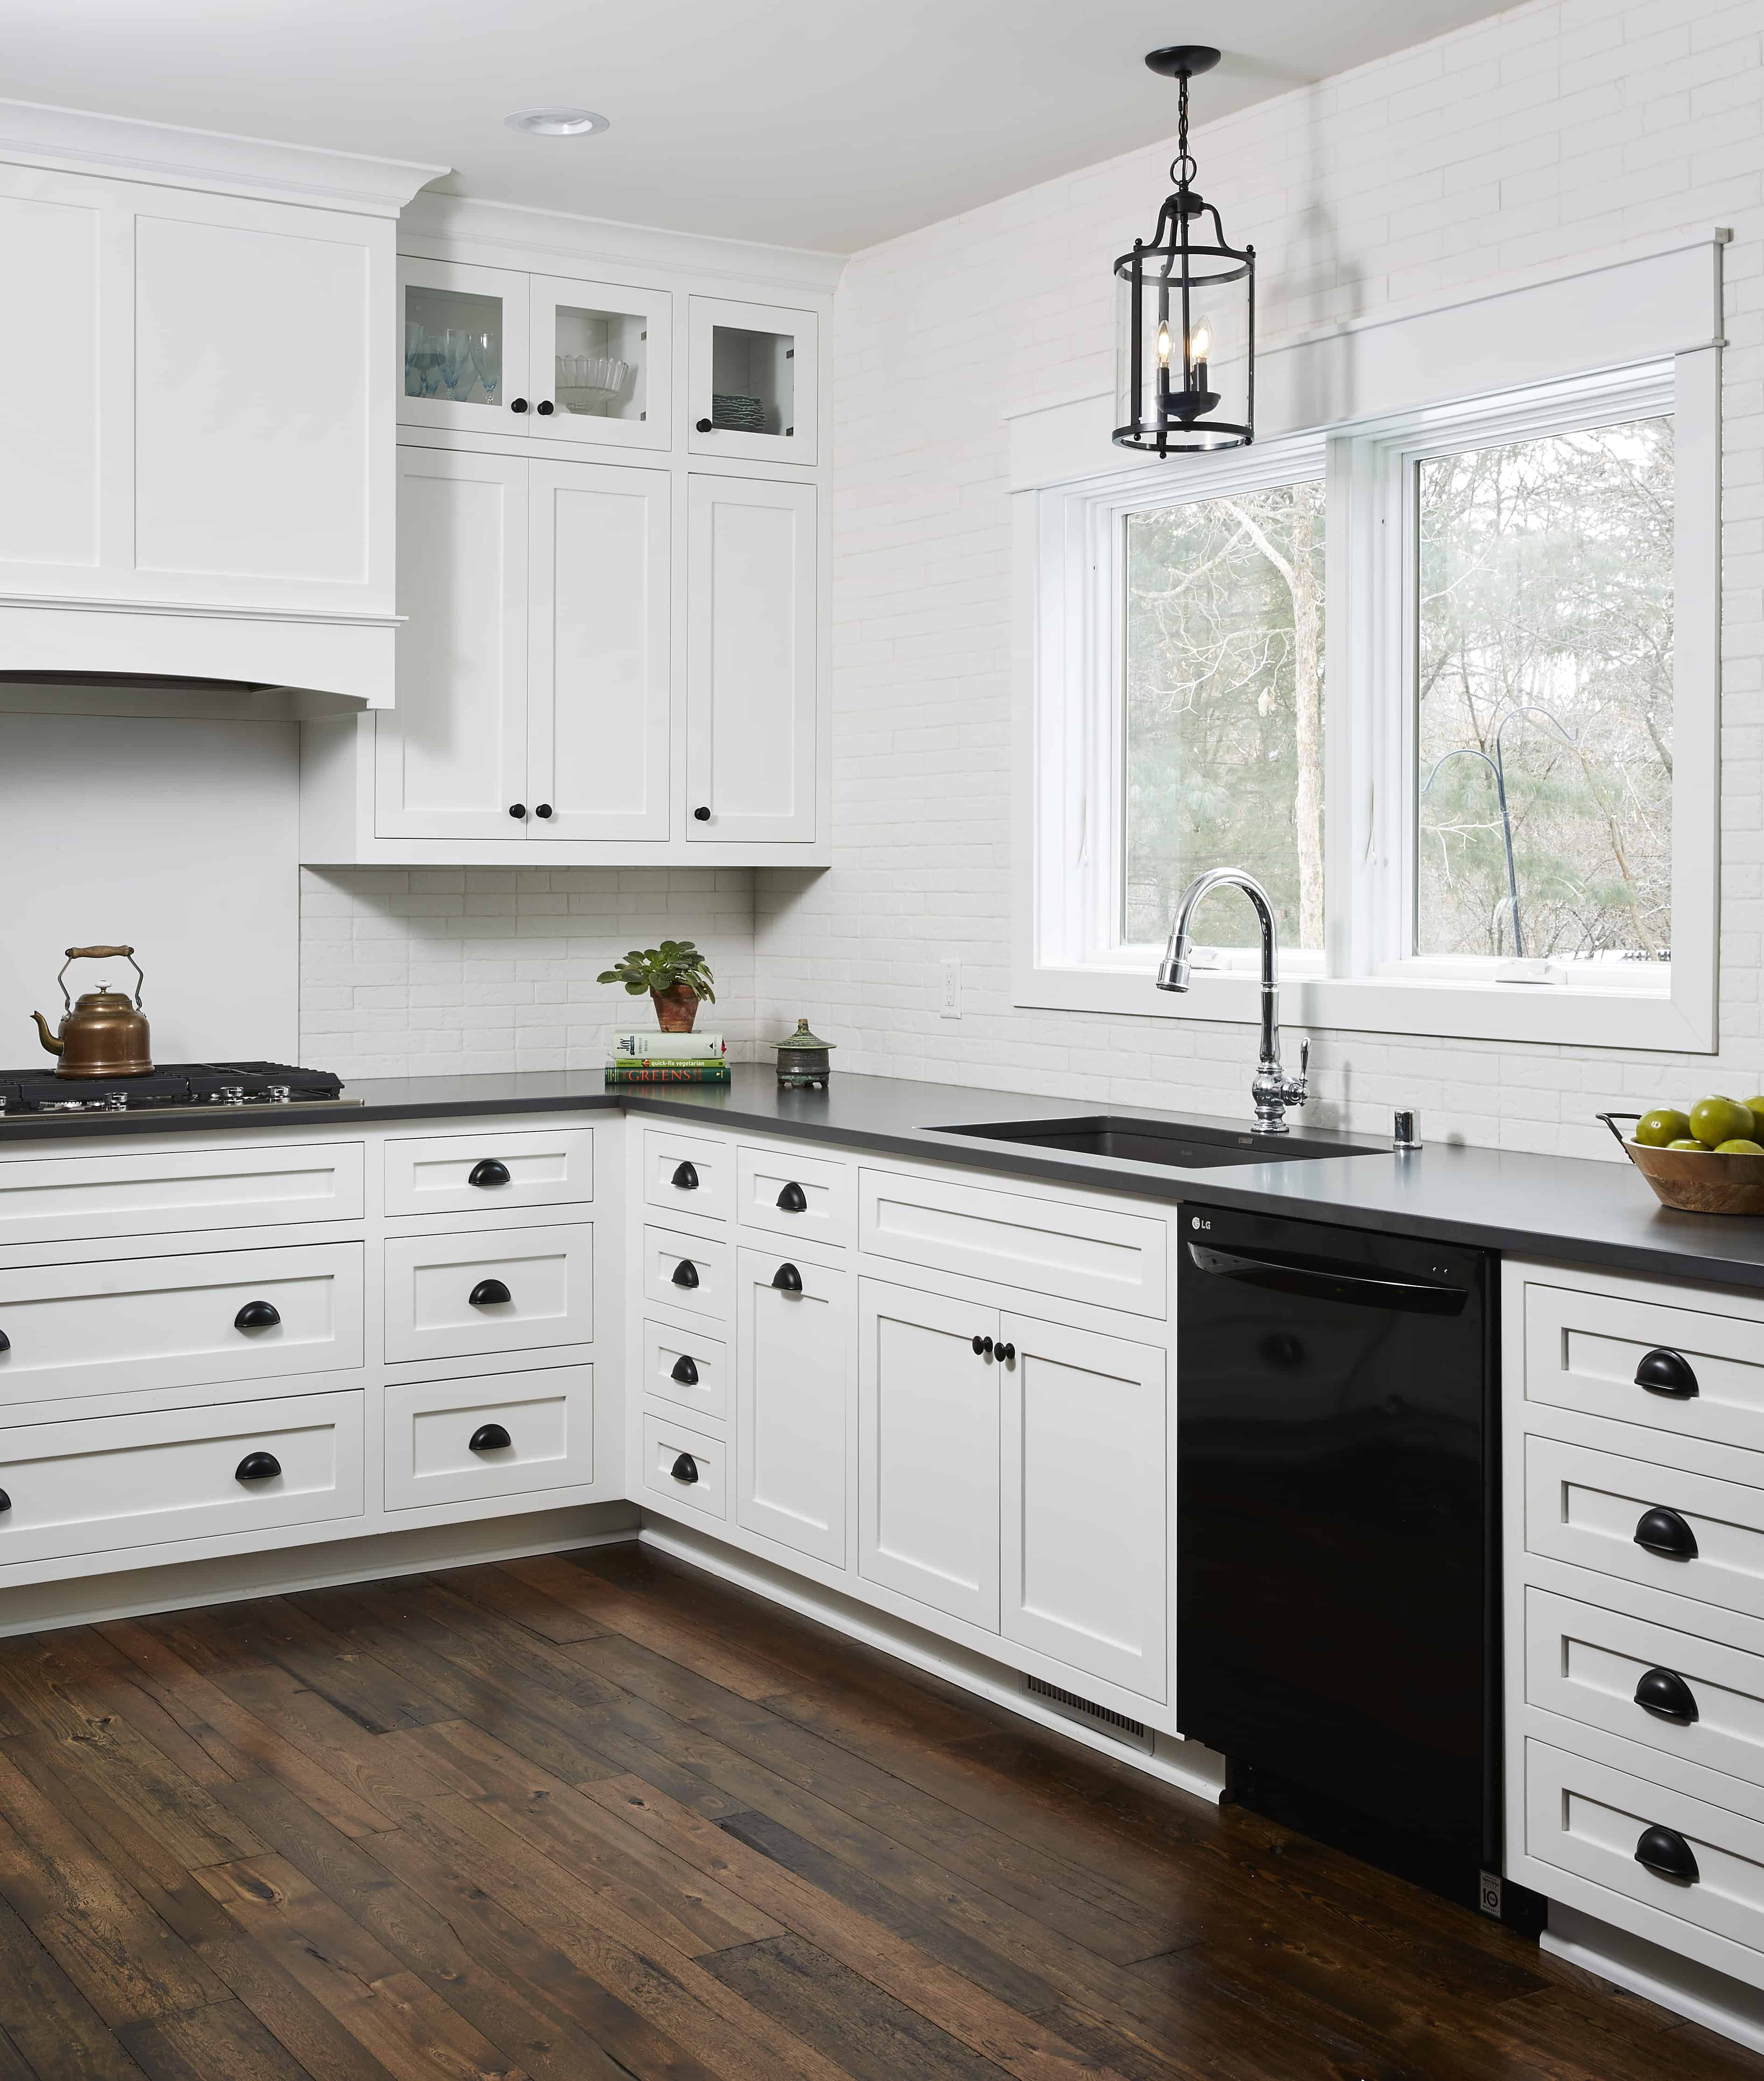 White painted kitchen cabinets in a modern Cape Cod style. Wood hood and glass door accents. Black hardware & light fixture to coordinate with appliances. Antique elm flooring.